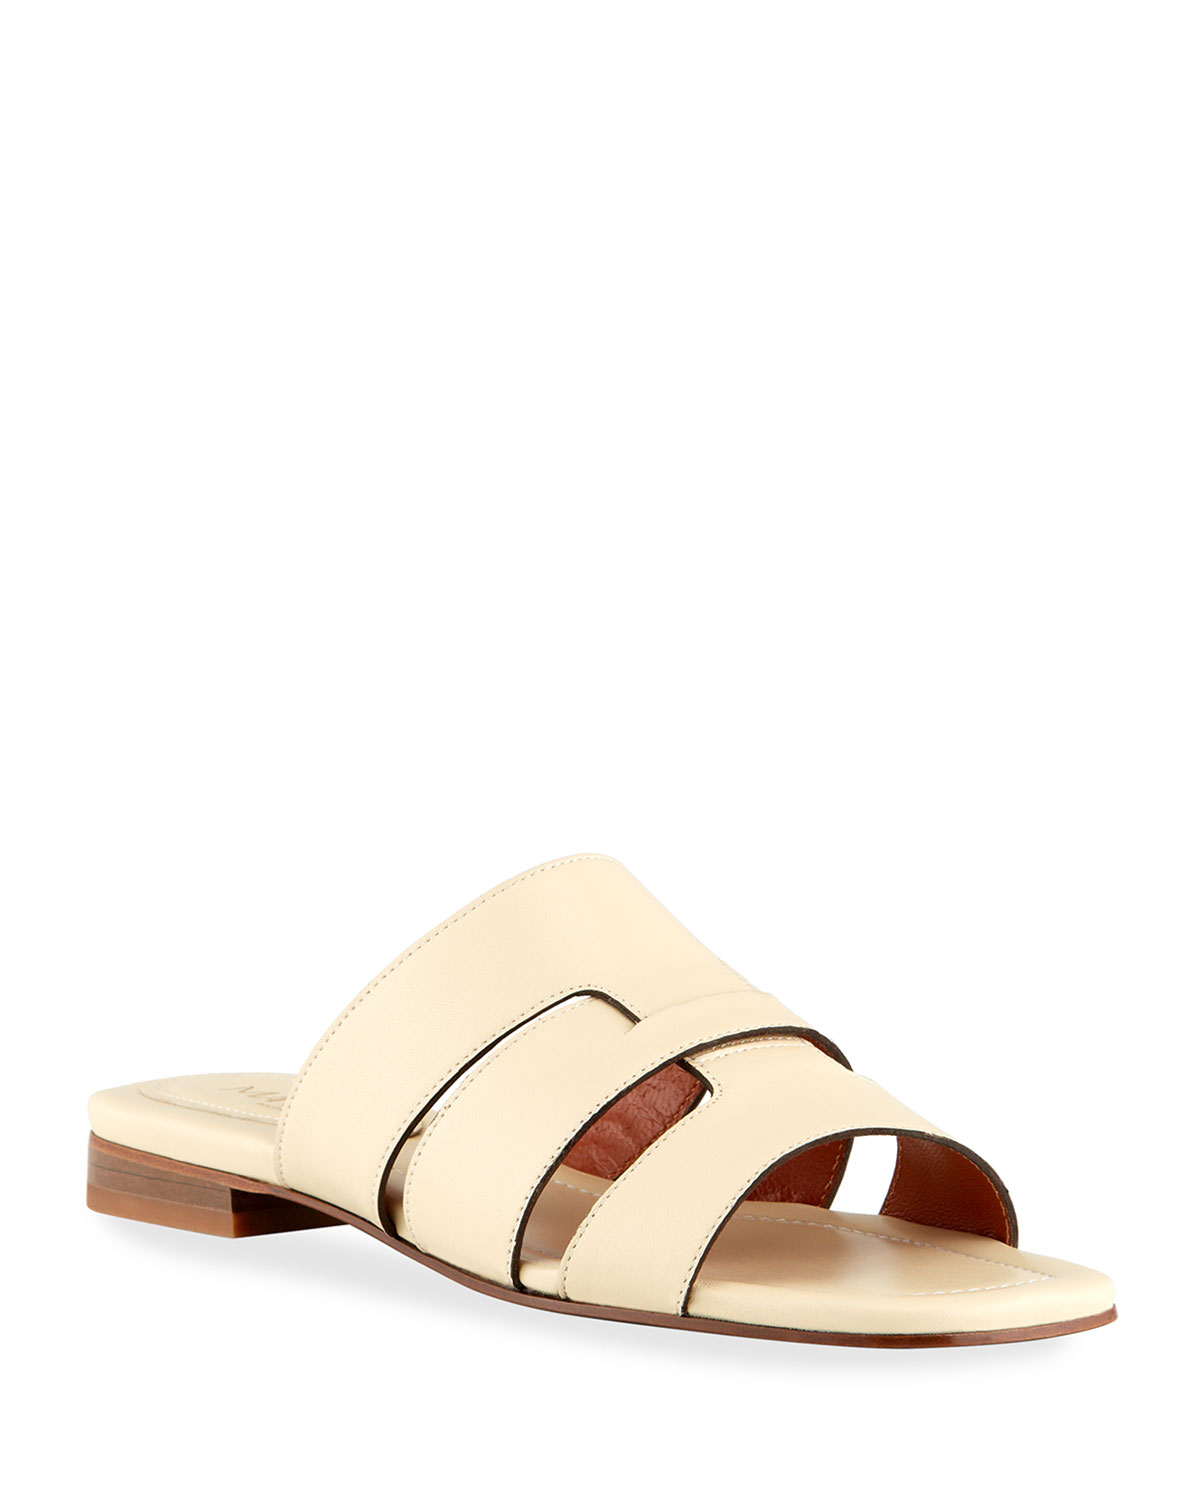 Woven Caged Leather Flat Sandals